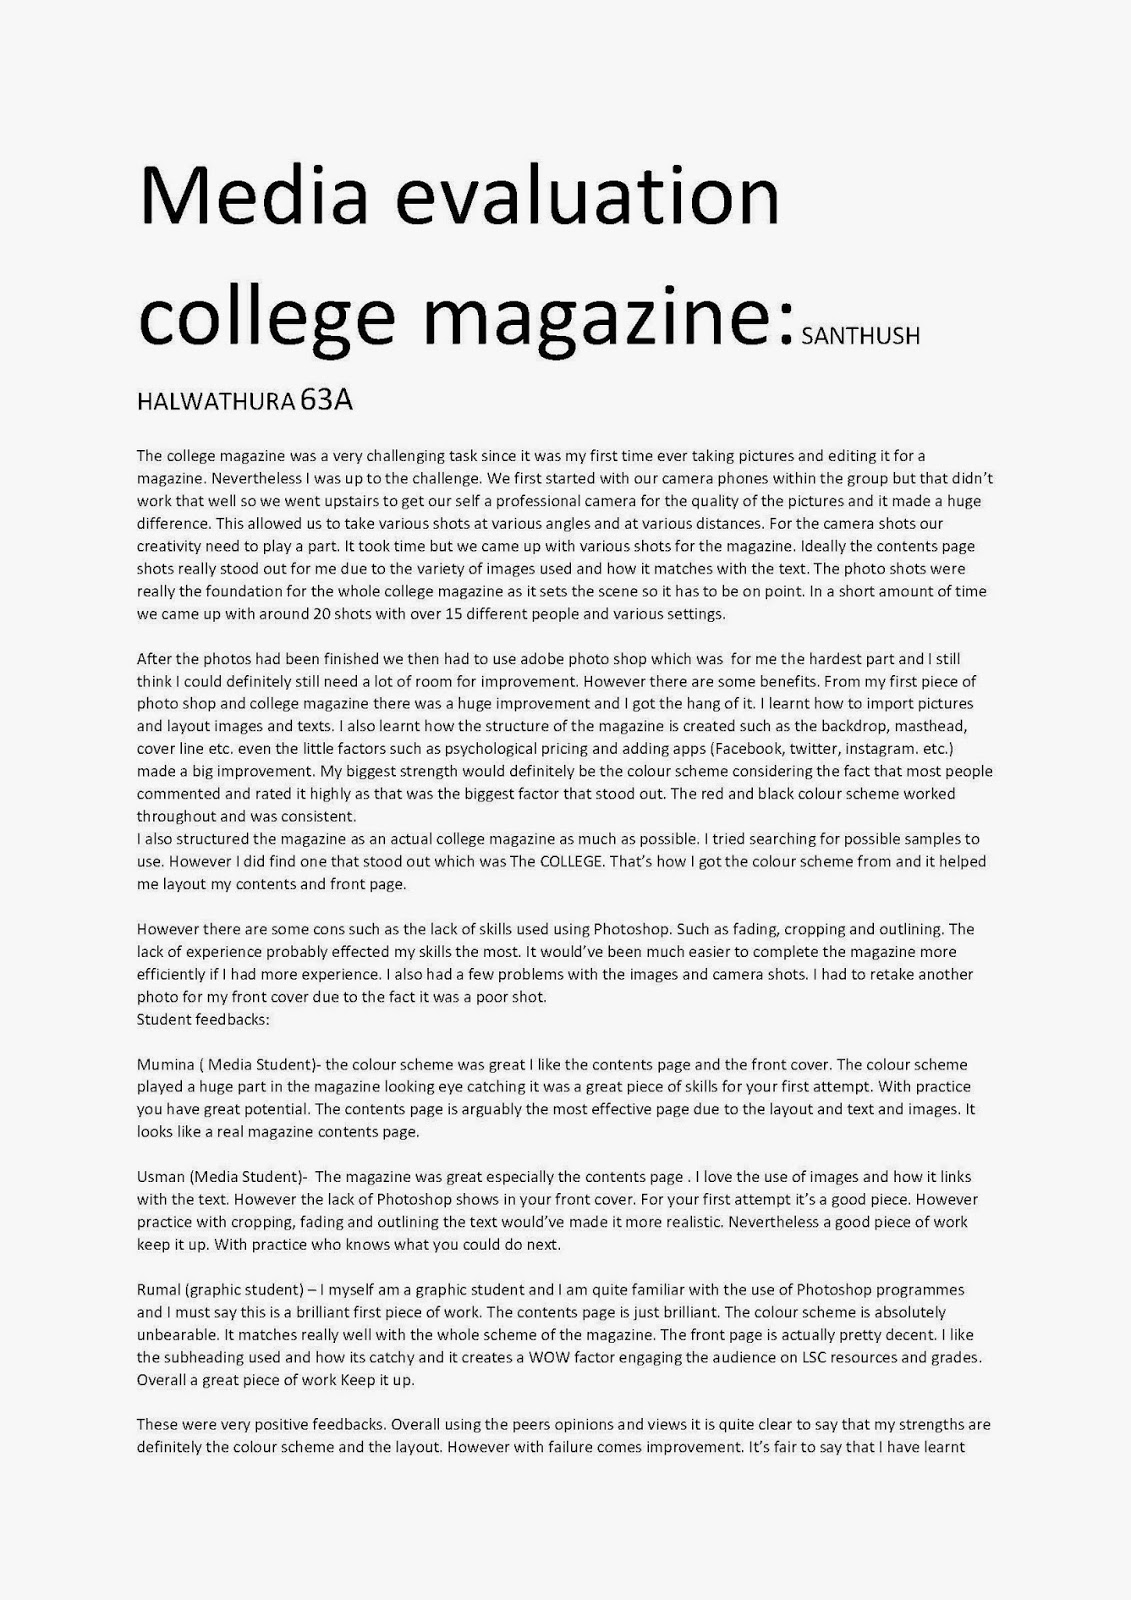 college essay evaluate experience It's well-written and avoids the common admission essay pitfalls discussed in previous videos (listing off accomplishments like a resume, writing about someone else instead.